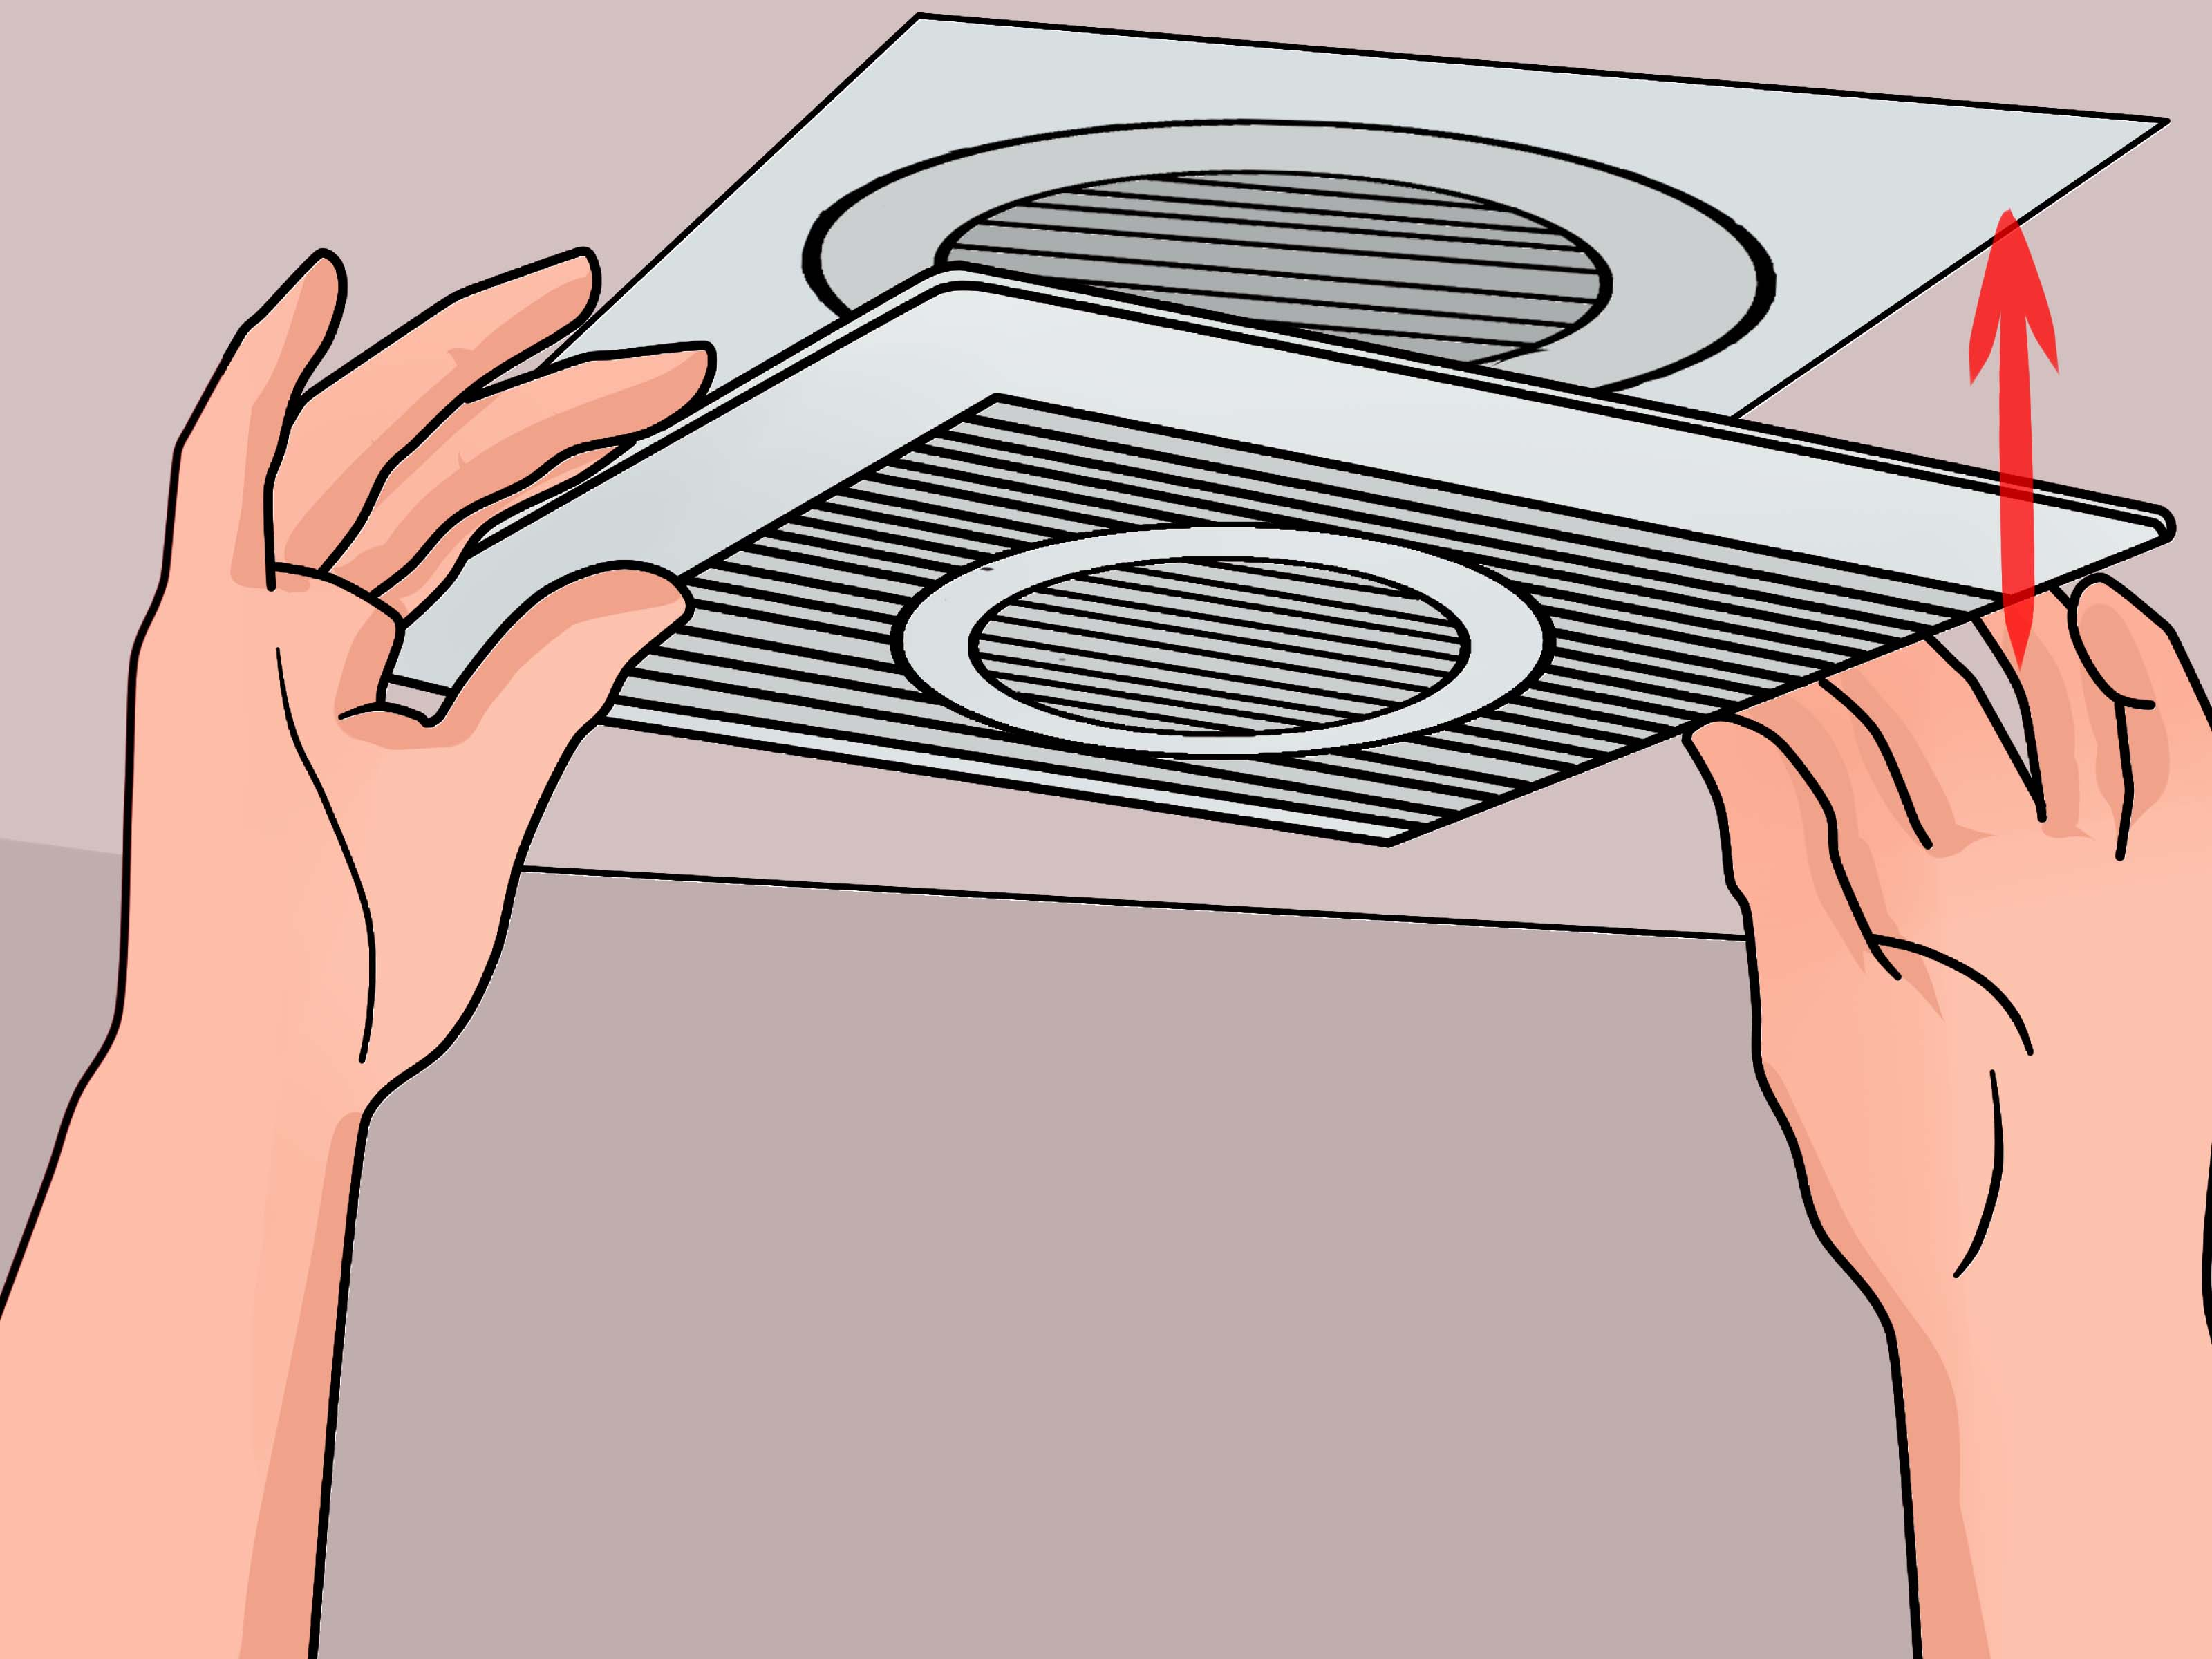 How To Install A Bathroom Exhaust Fan How To Install A Bathroom Fan With Pictures Wikihow